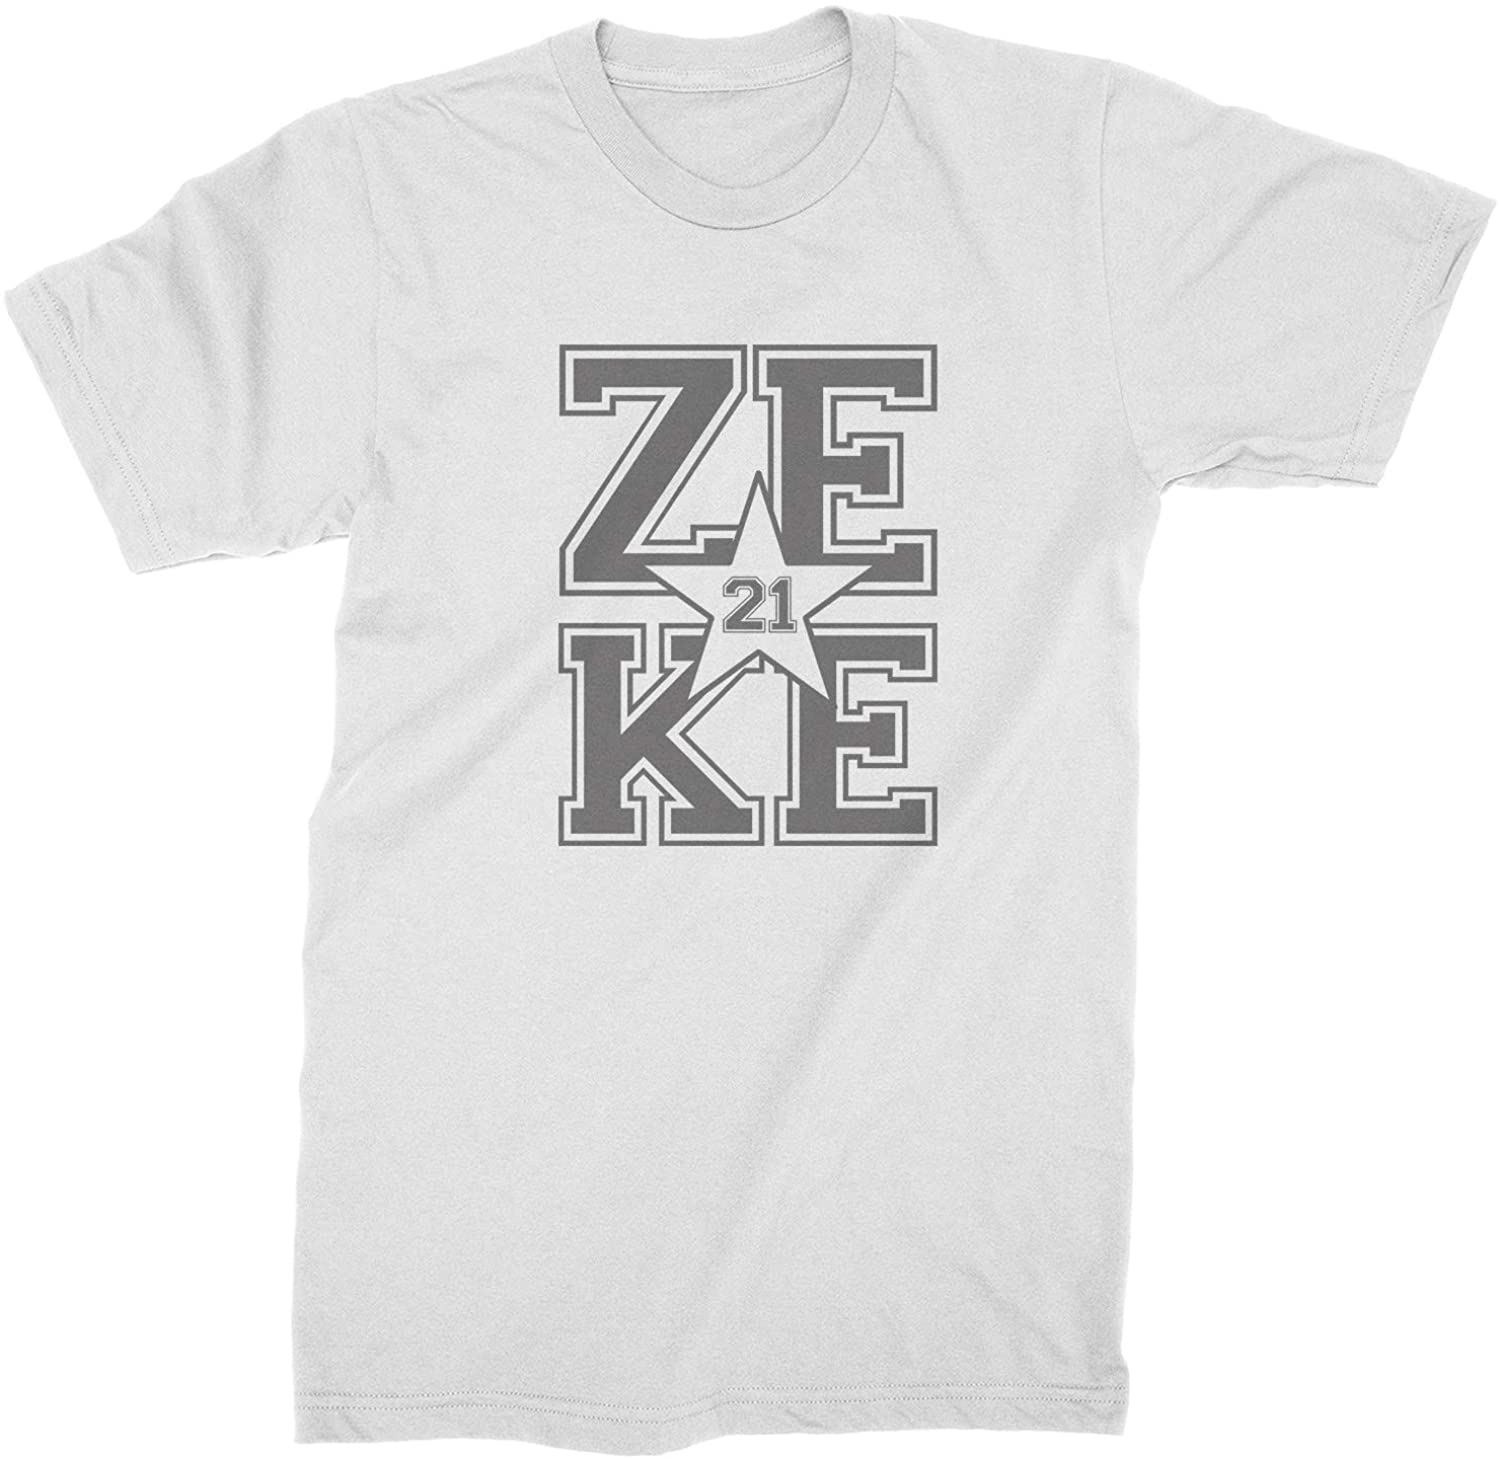 Expression Tees Zeke 21 Feed Zeke Mens T-Shirt